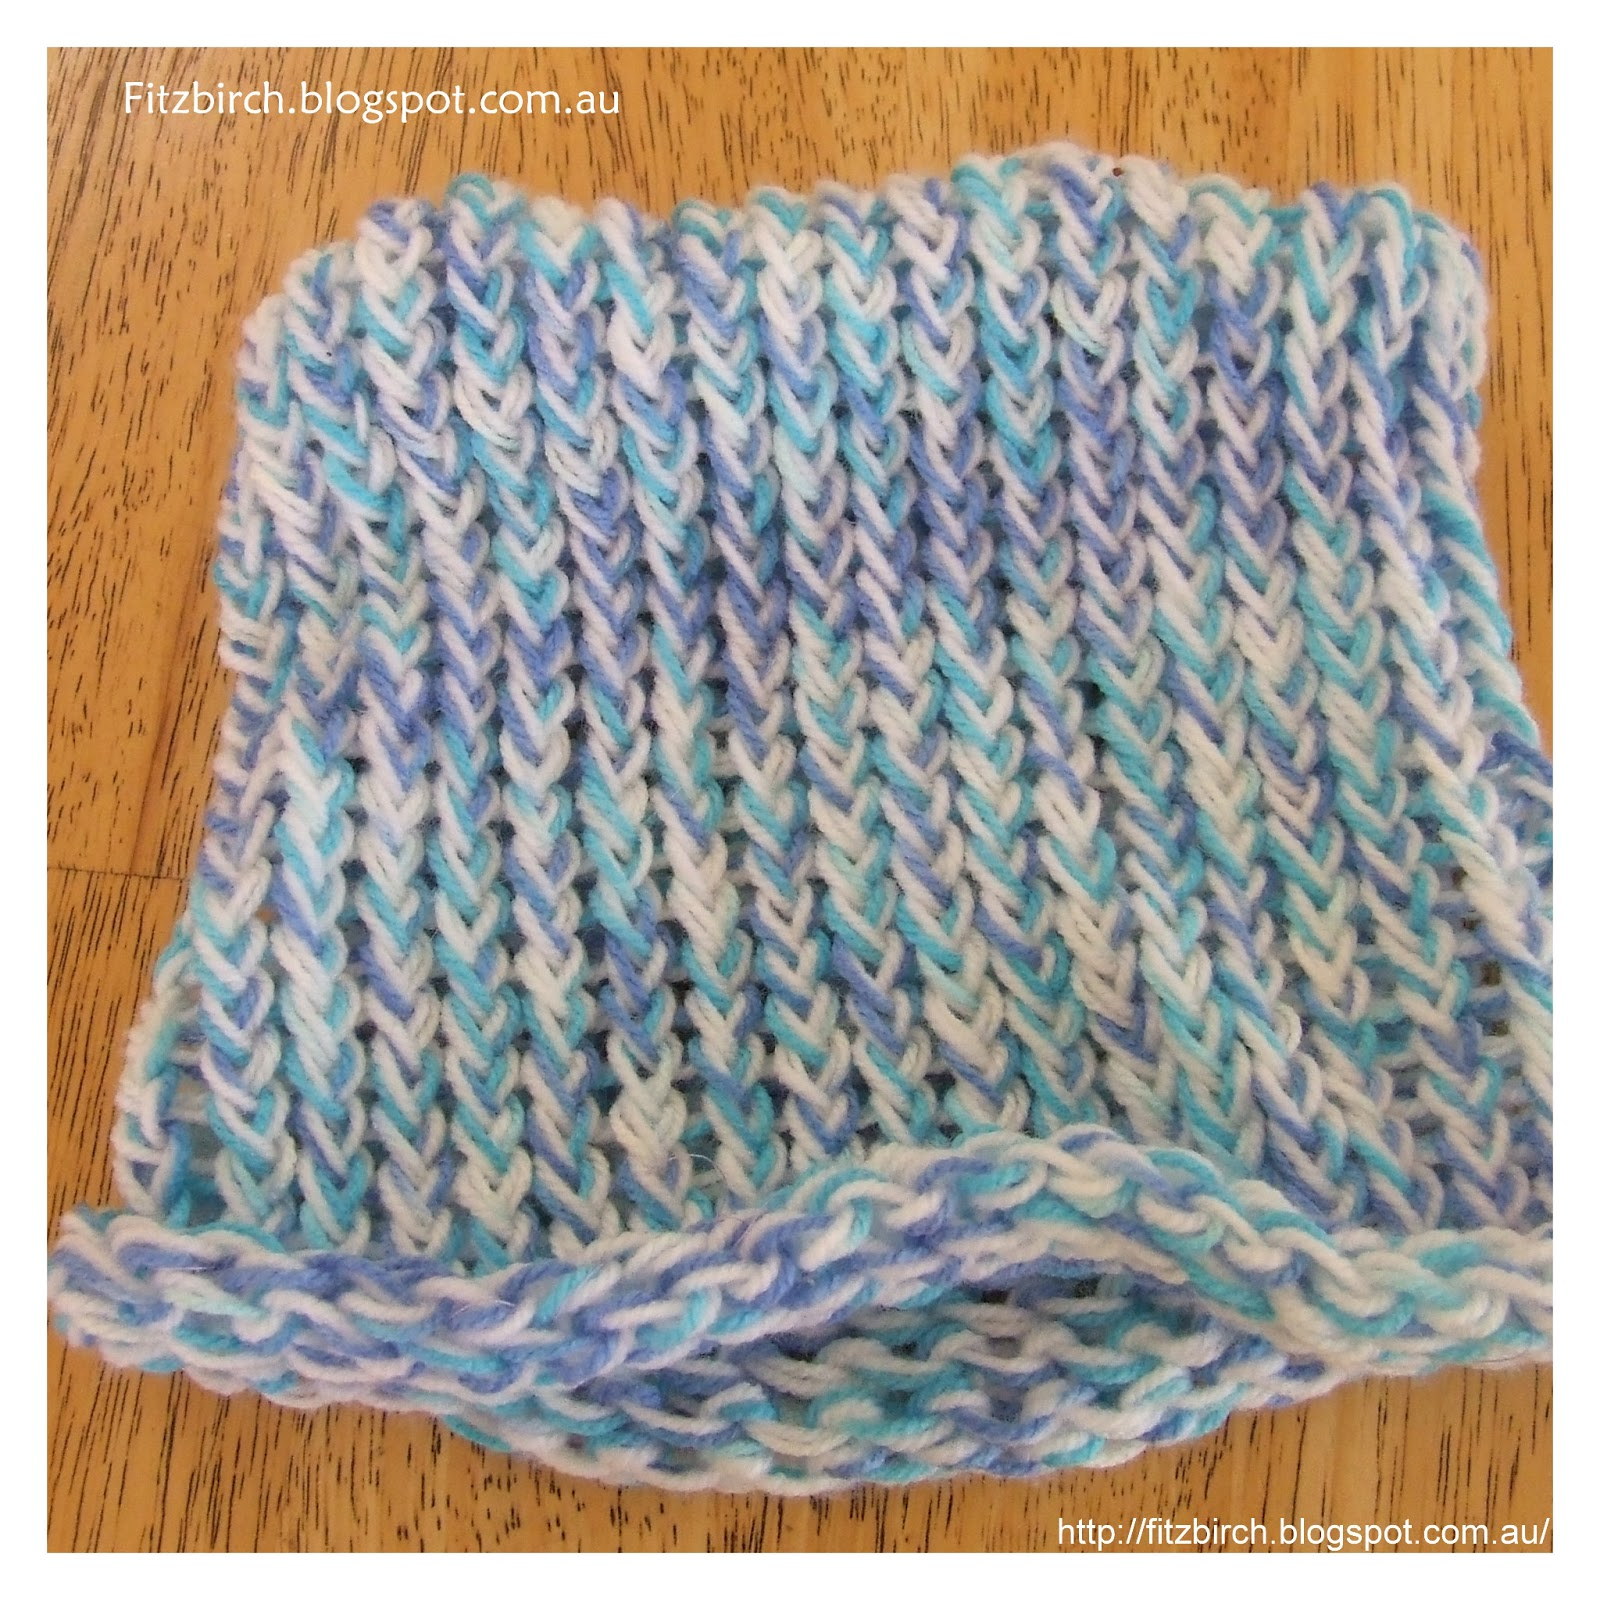 FitzBirch Crafts: Charity Loom Knit Hats - Sizing Guide